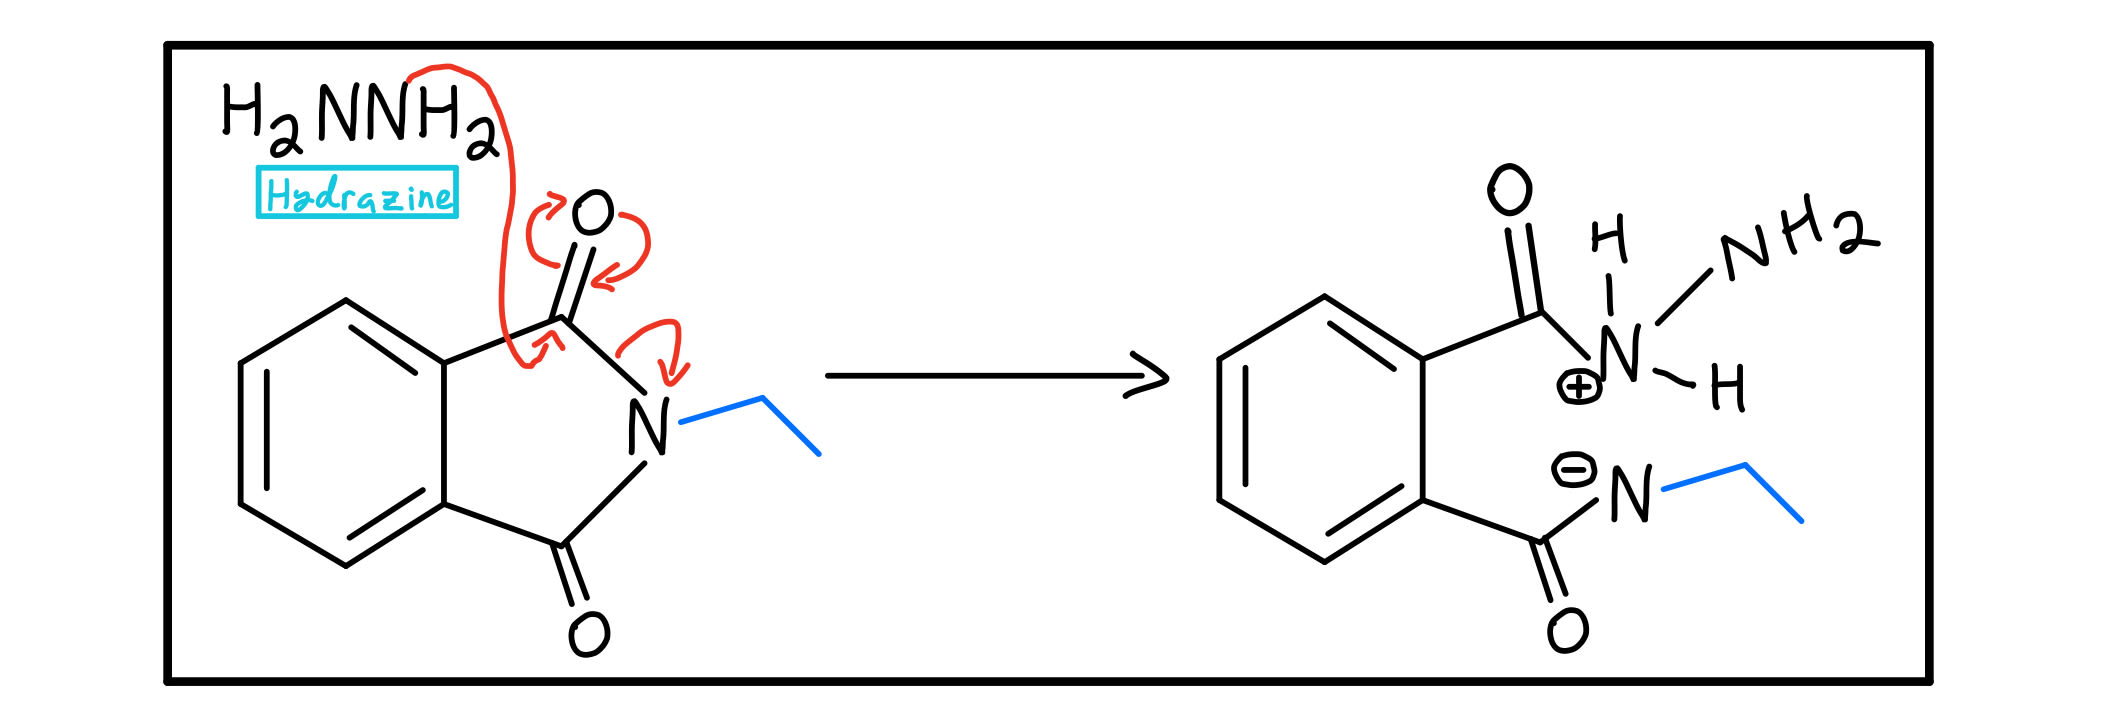 Hydrazine nucleophilic acyl substitution